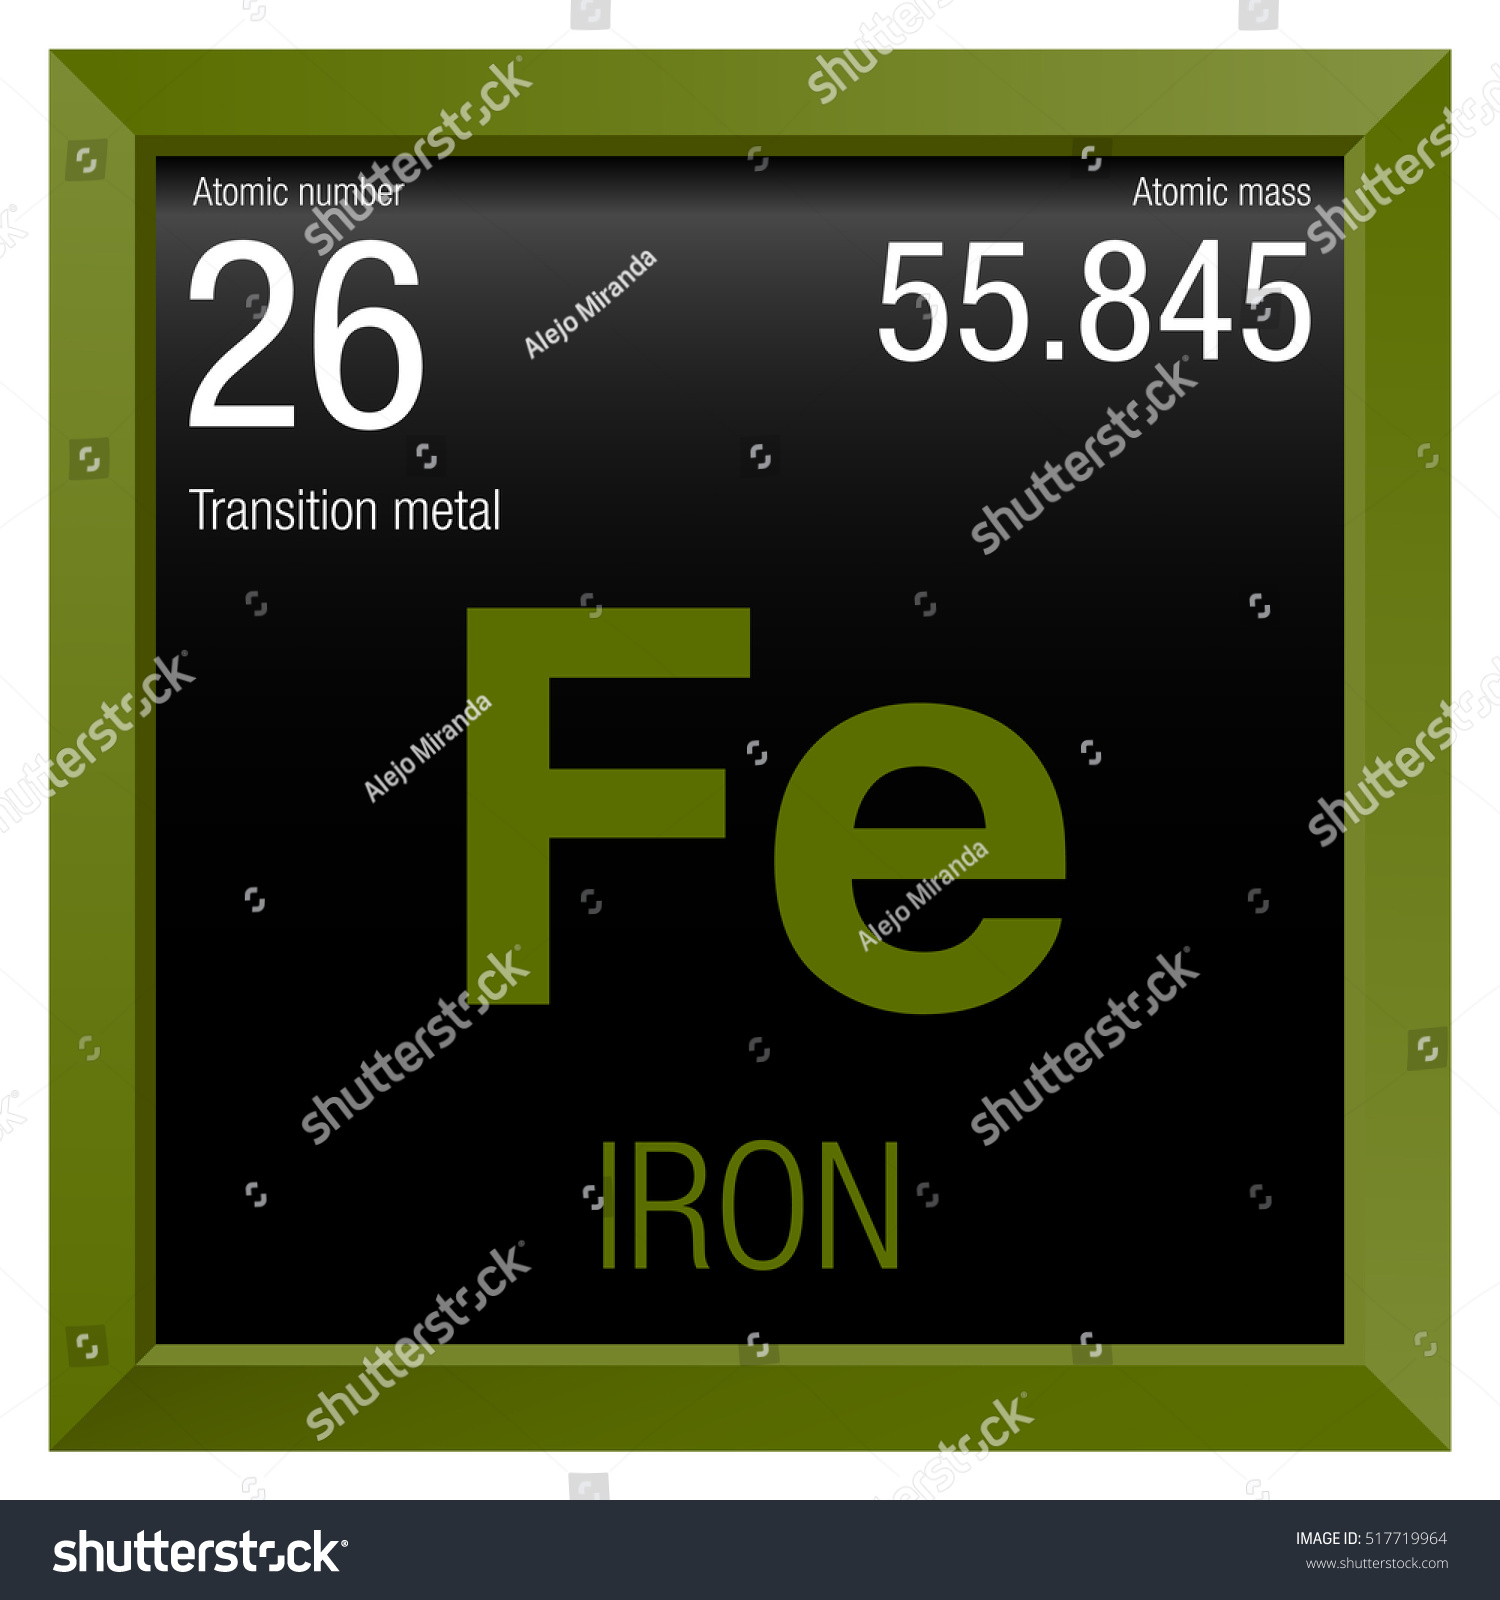 Symbol for iron on periodic table gallery periodic table images symbol for iron on periodic table gallery periodic table images symbol for iron on periodic table gamestrikefo Choice Image